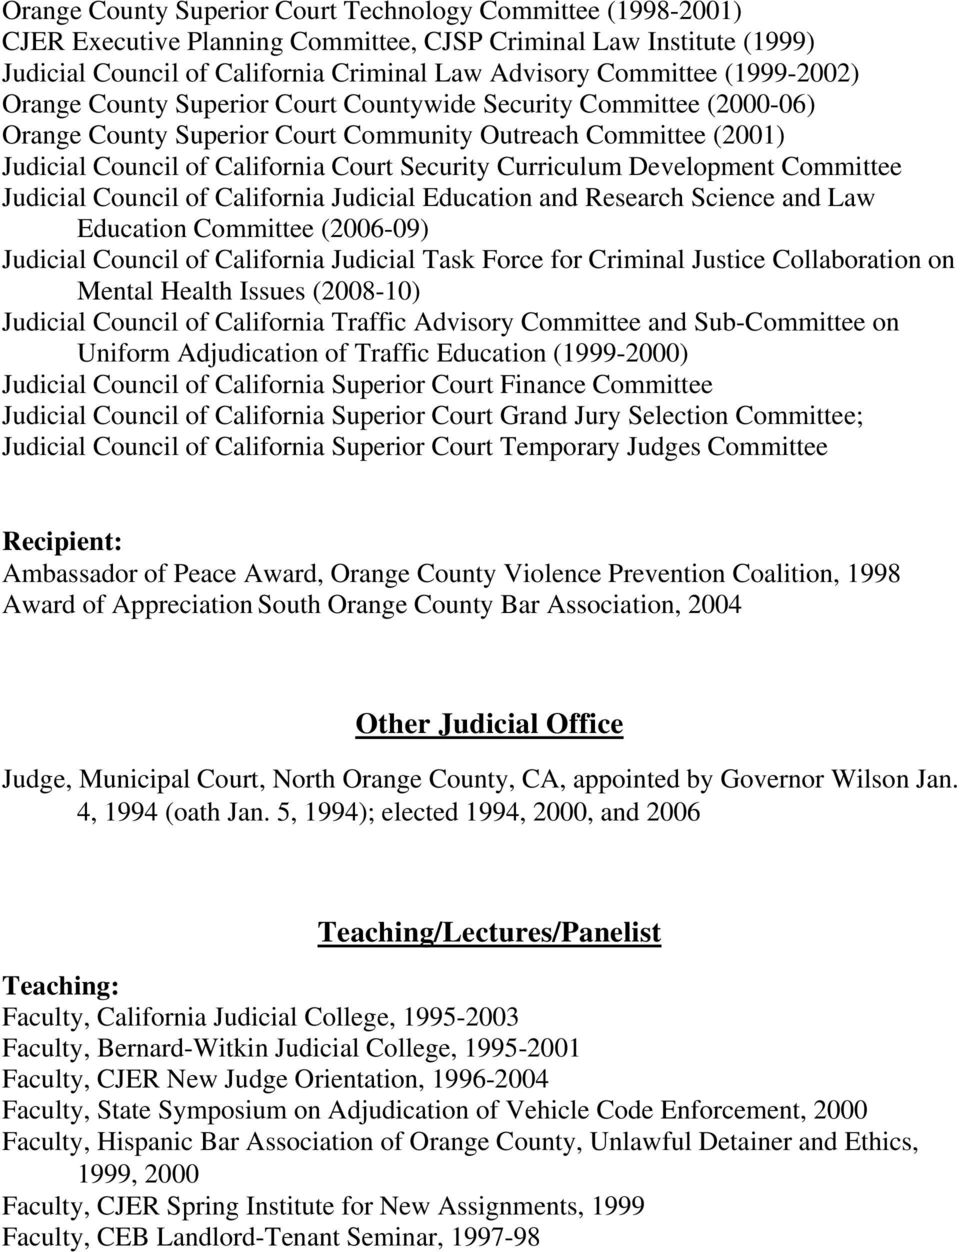 Curriculum Development Committee Judicial Council of California Judicial Education and Research Science and Law Education Committee (2006-09) Judicial Council of California Judicial Task Force for